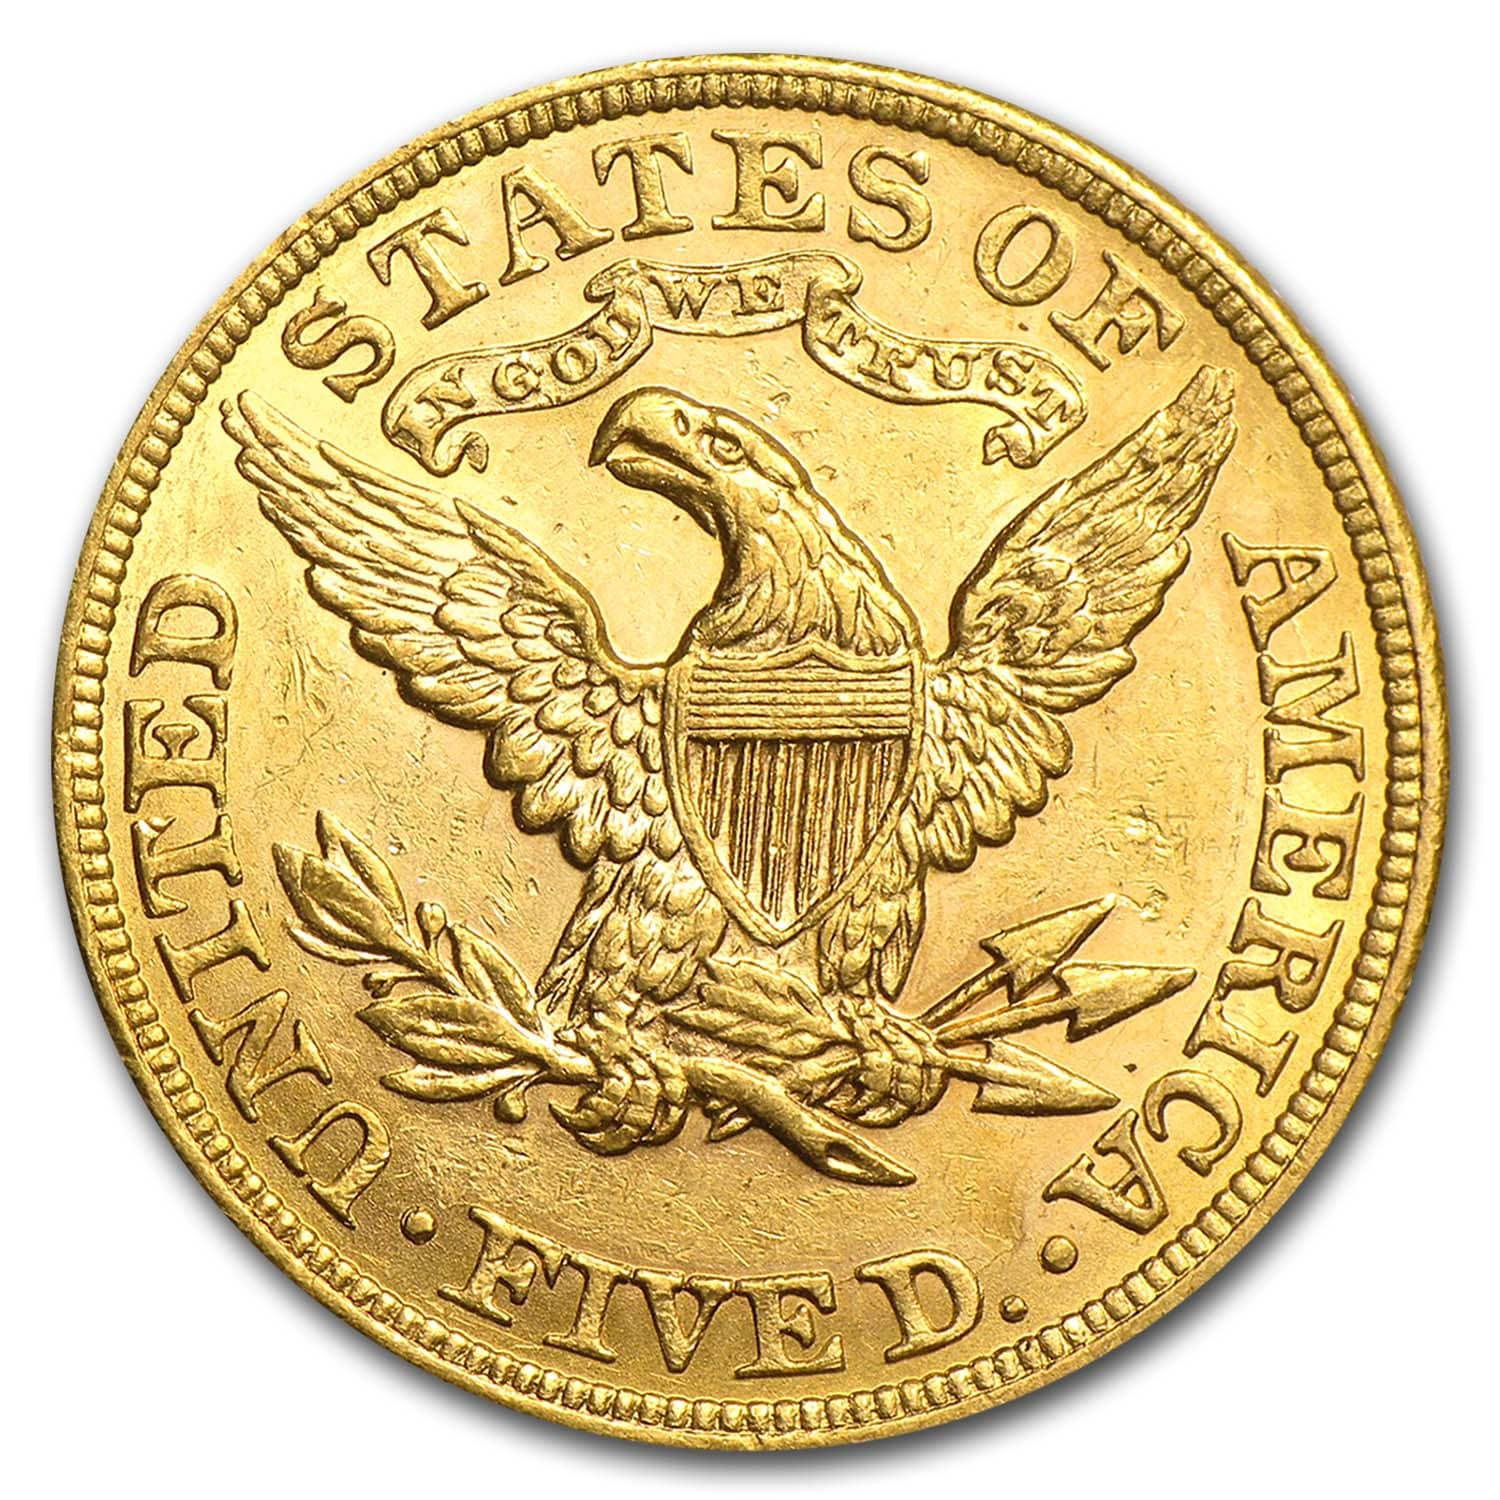 $5 Liberty Gold Half Eagle - Almost Uncirculated